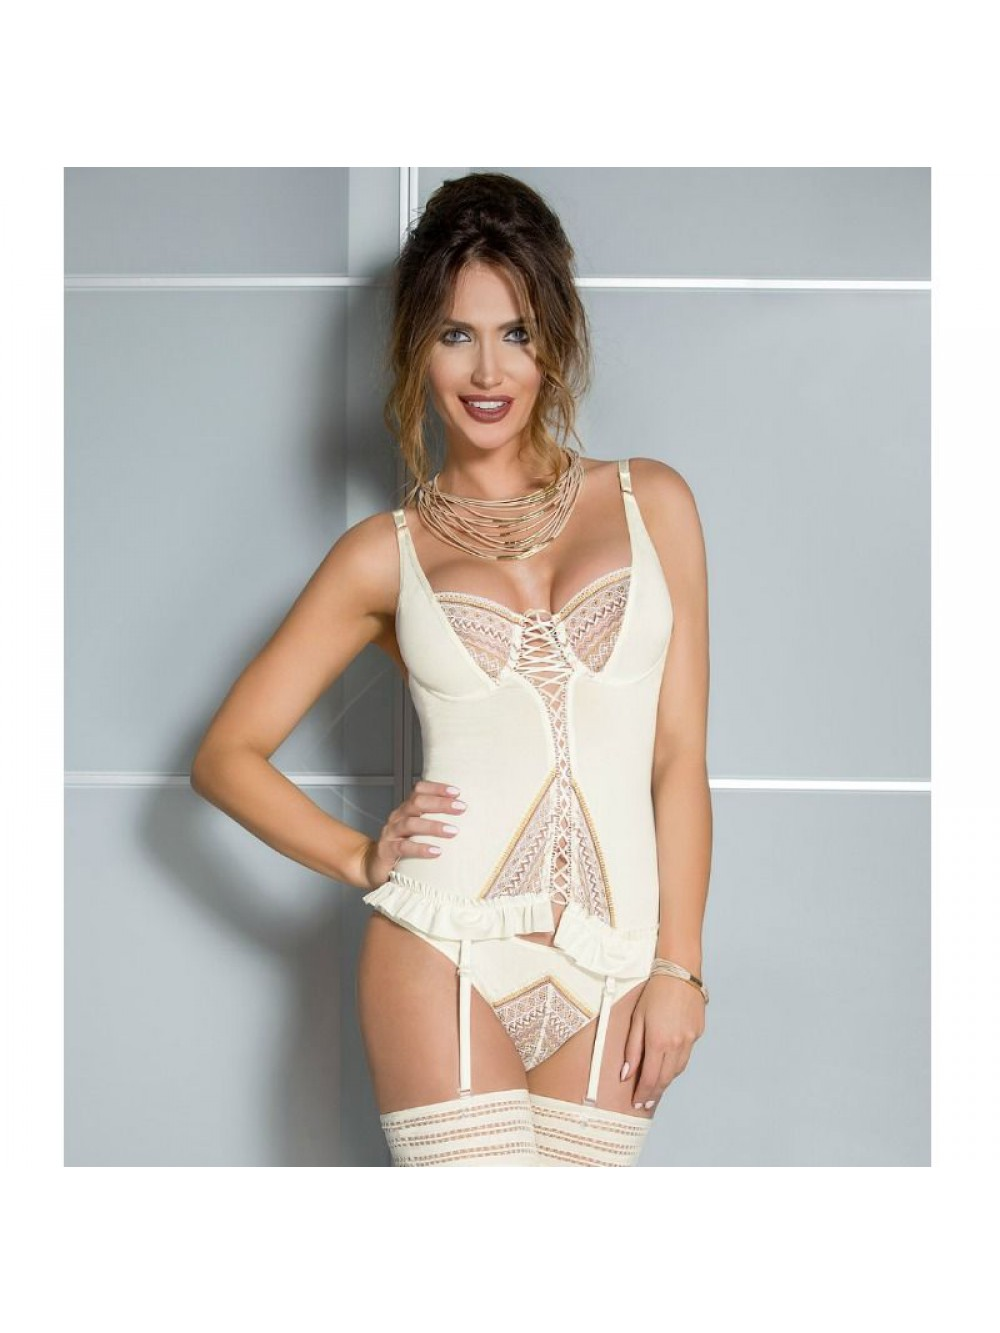 CASMIR CONNIE CORSET CREAM COLOR SIZE L/XL 5901691996007